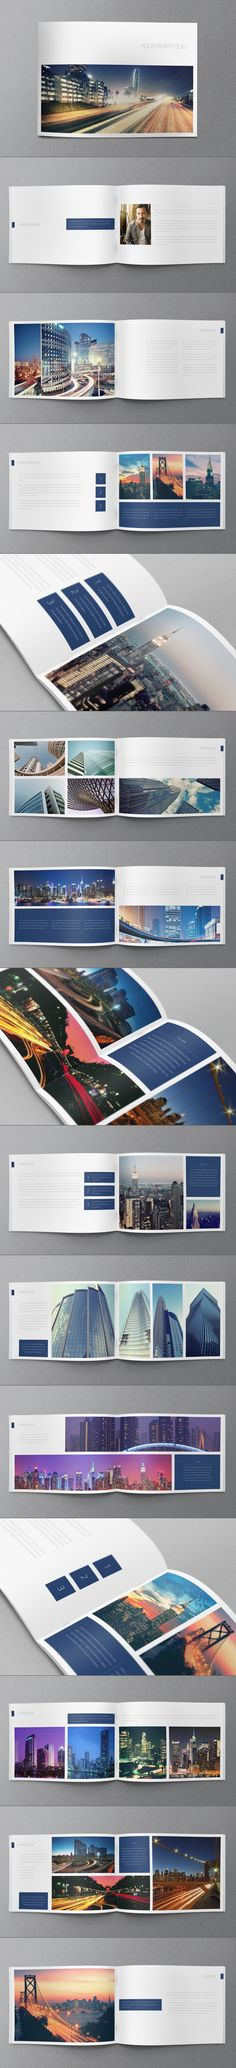 Minimal Brochure Design by Abra Design, via Behance